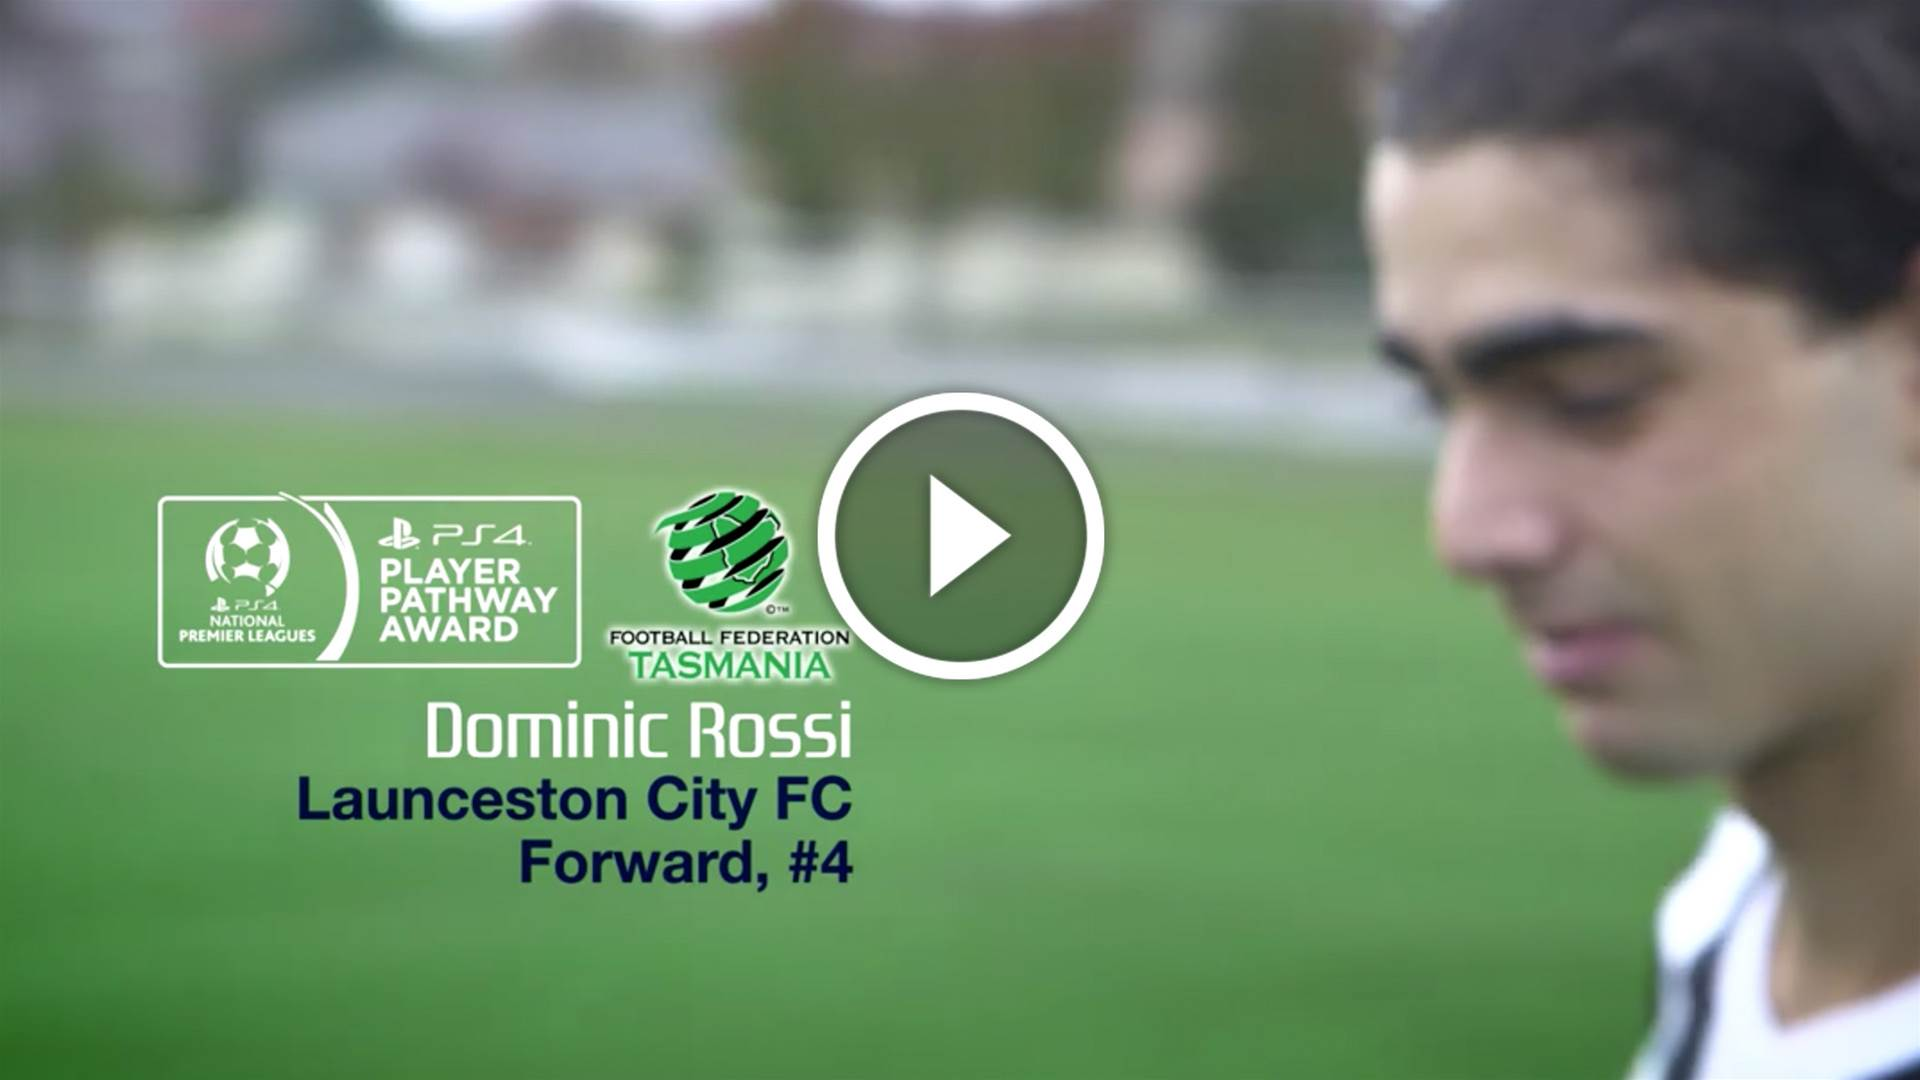 Dominic Rossi plays up